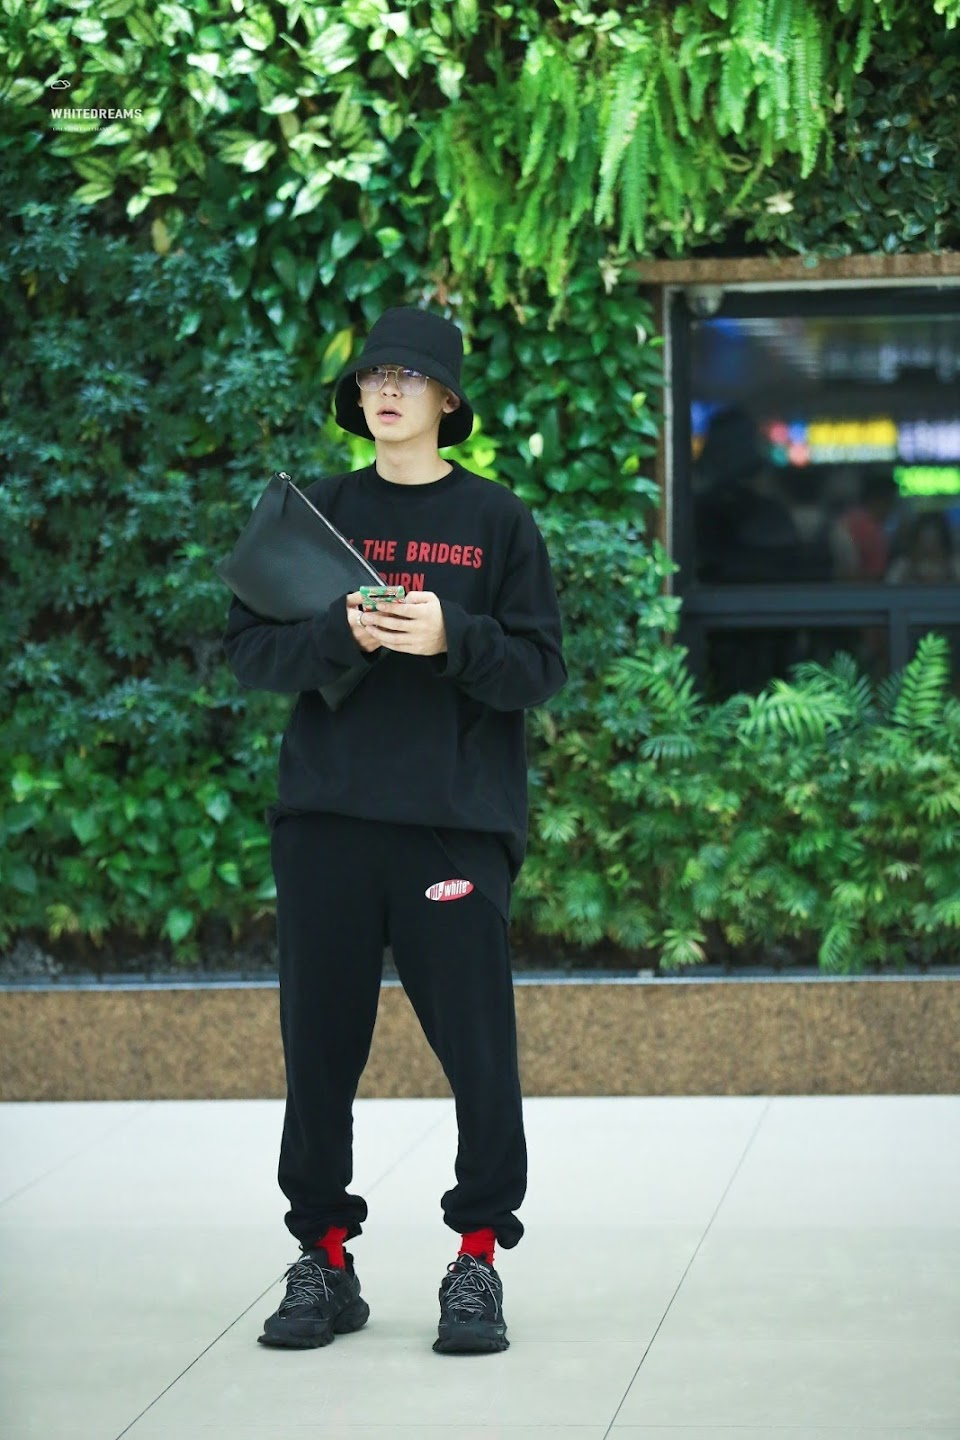 chanyeolairport_1a